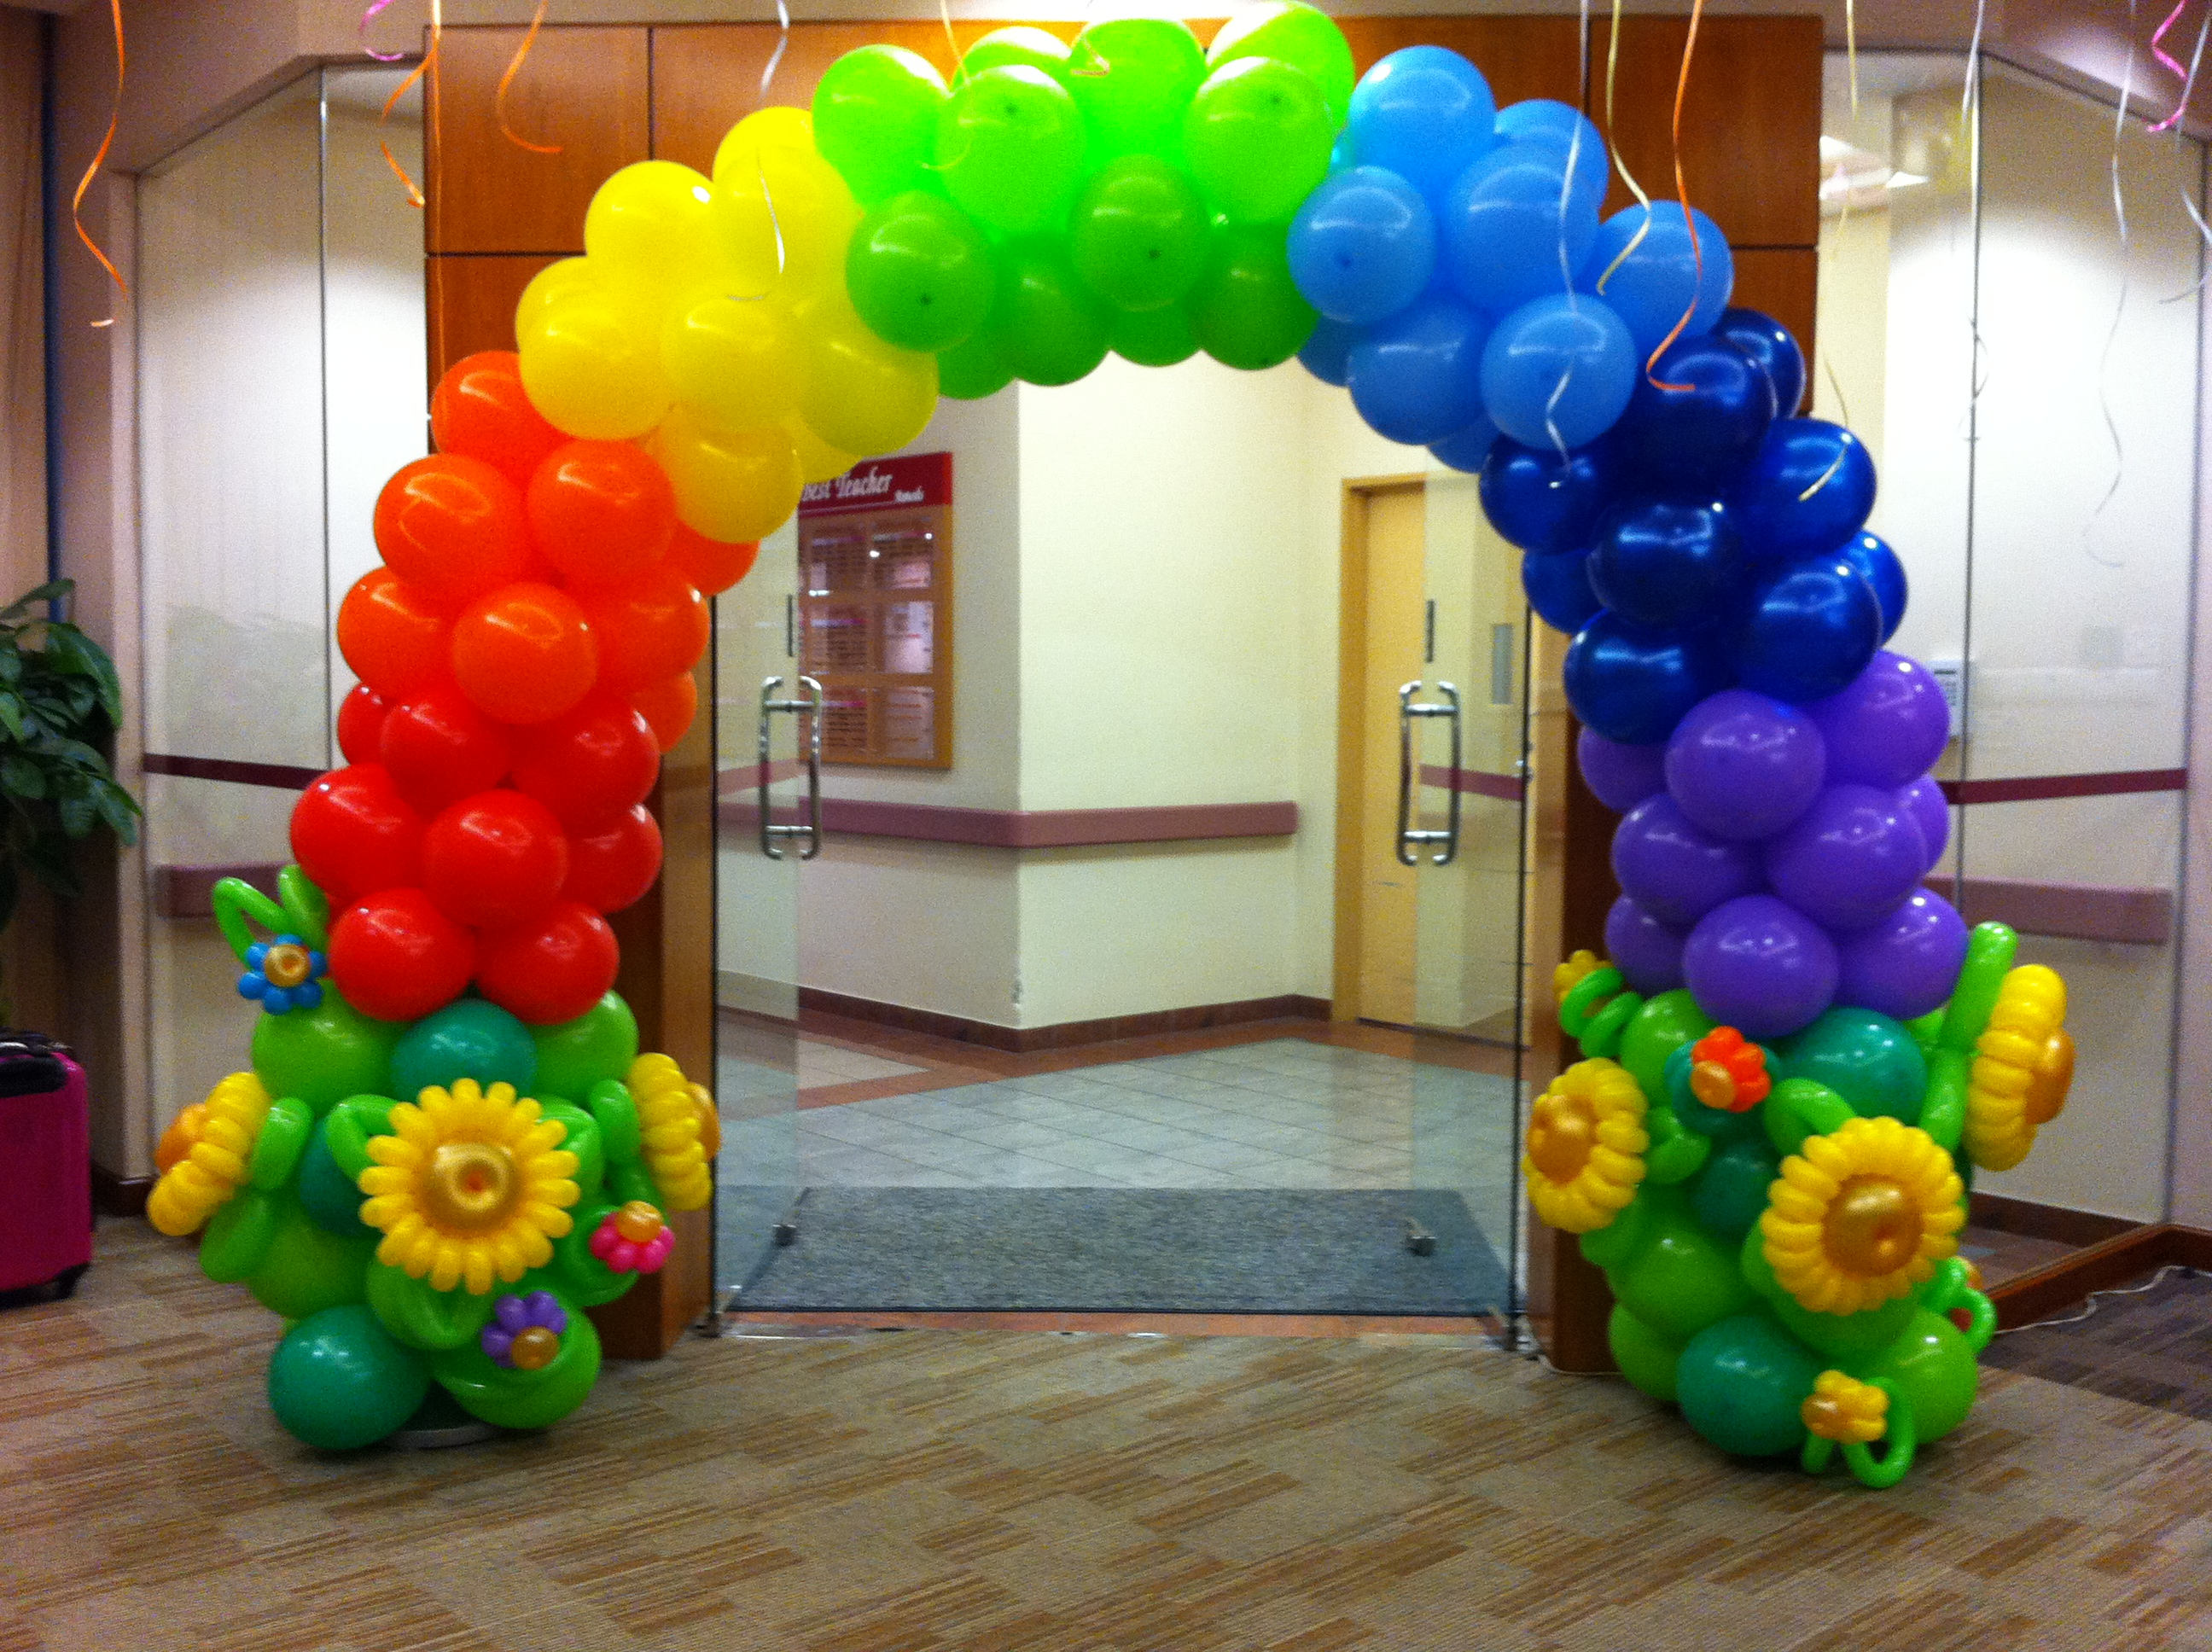 Singapore balloon rainbow arch that balloons for Balloon decoration images party